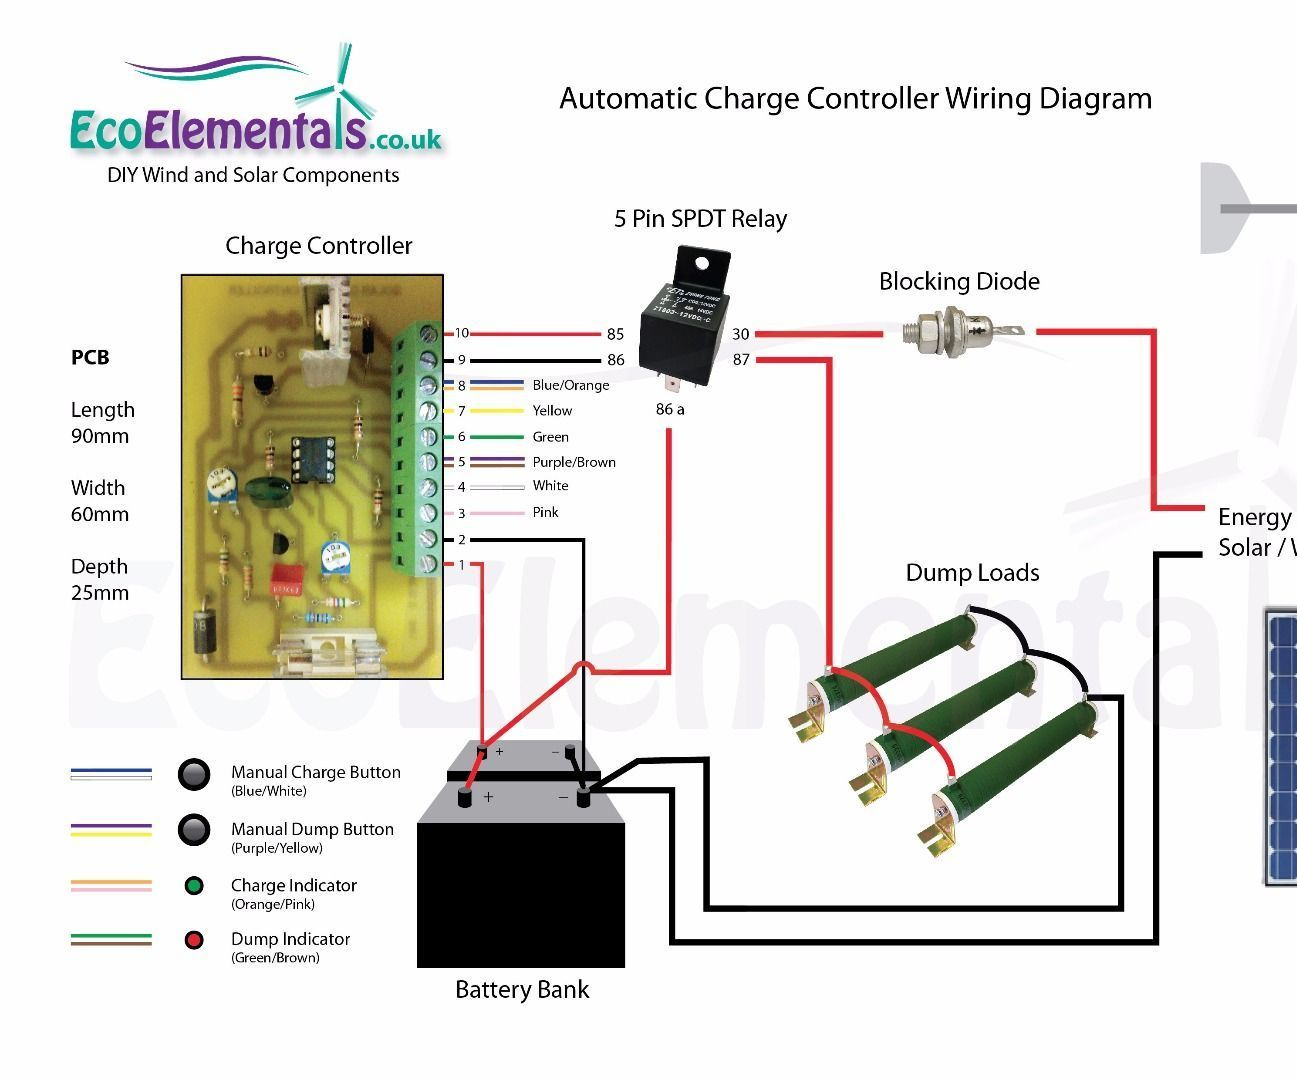 small resolution of charge controller wiring diagram for diy wind turbine or solar solar schematic wiring diagram charge controller